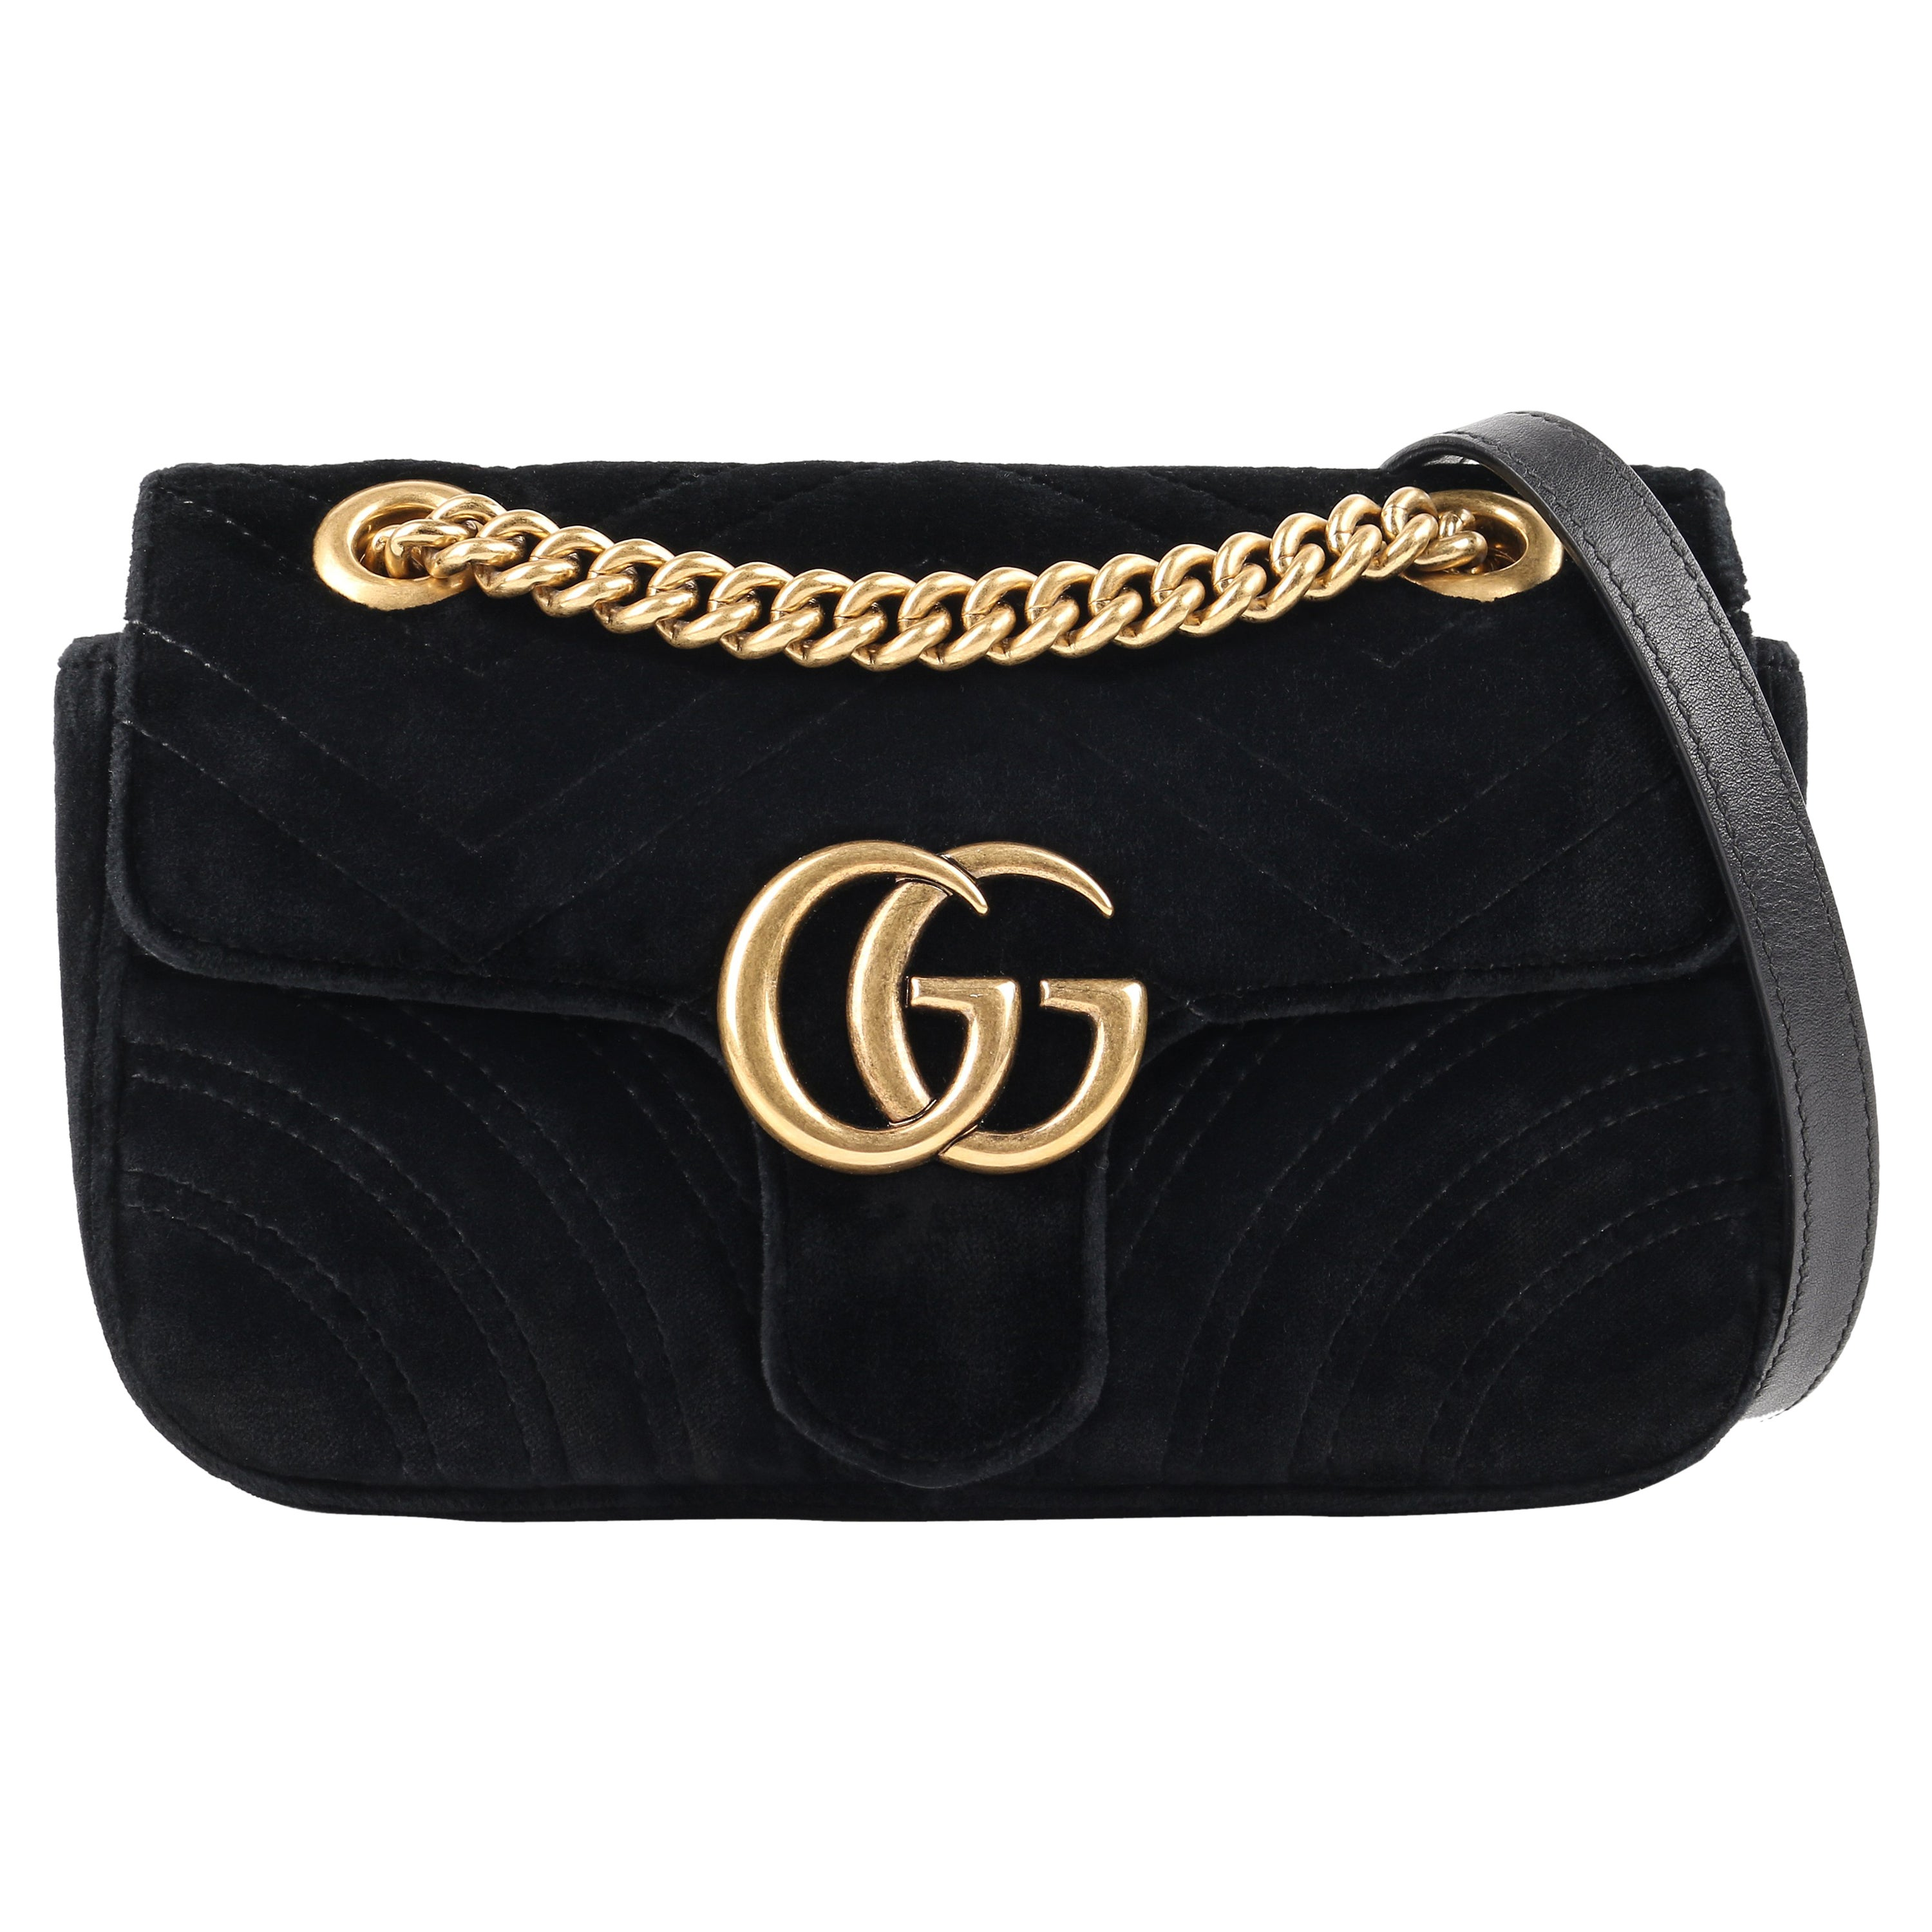 "GUCCI A/W 2016 ""GG Marmont Mini"" Quilted Velvet Flap Top Chain Handle Purse"